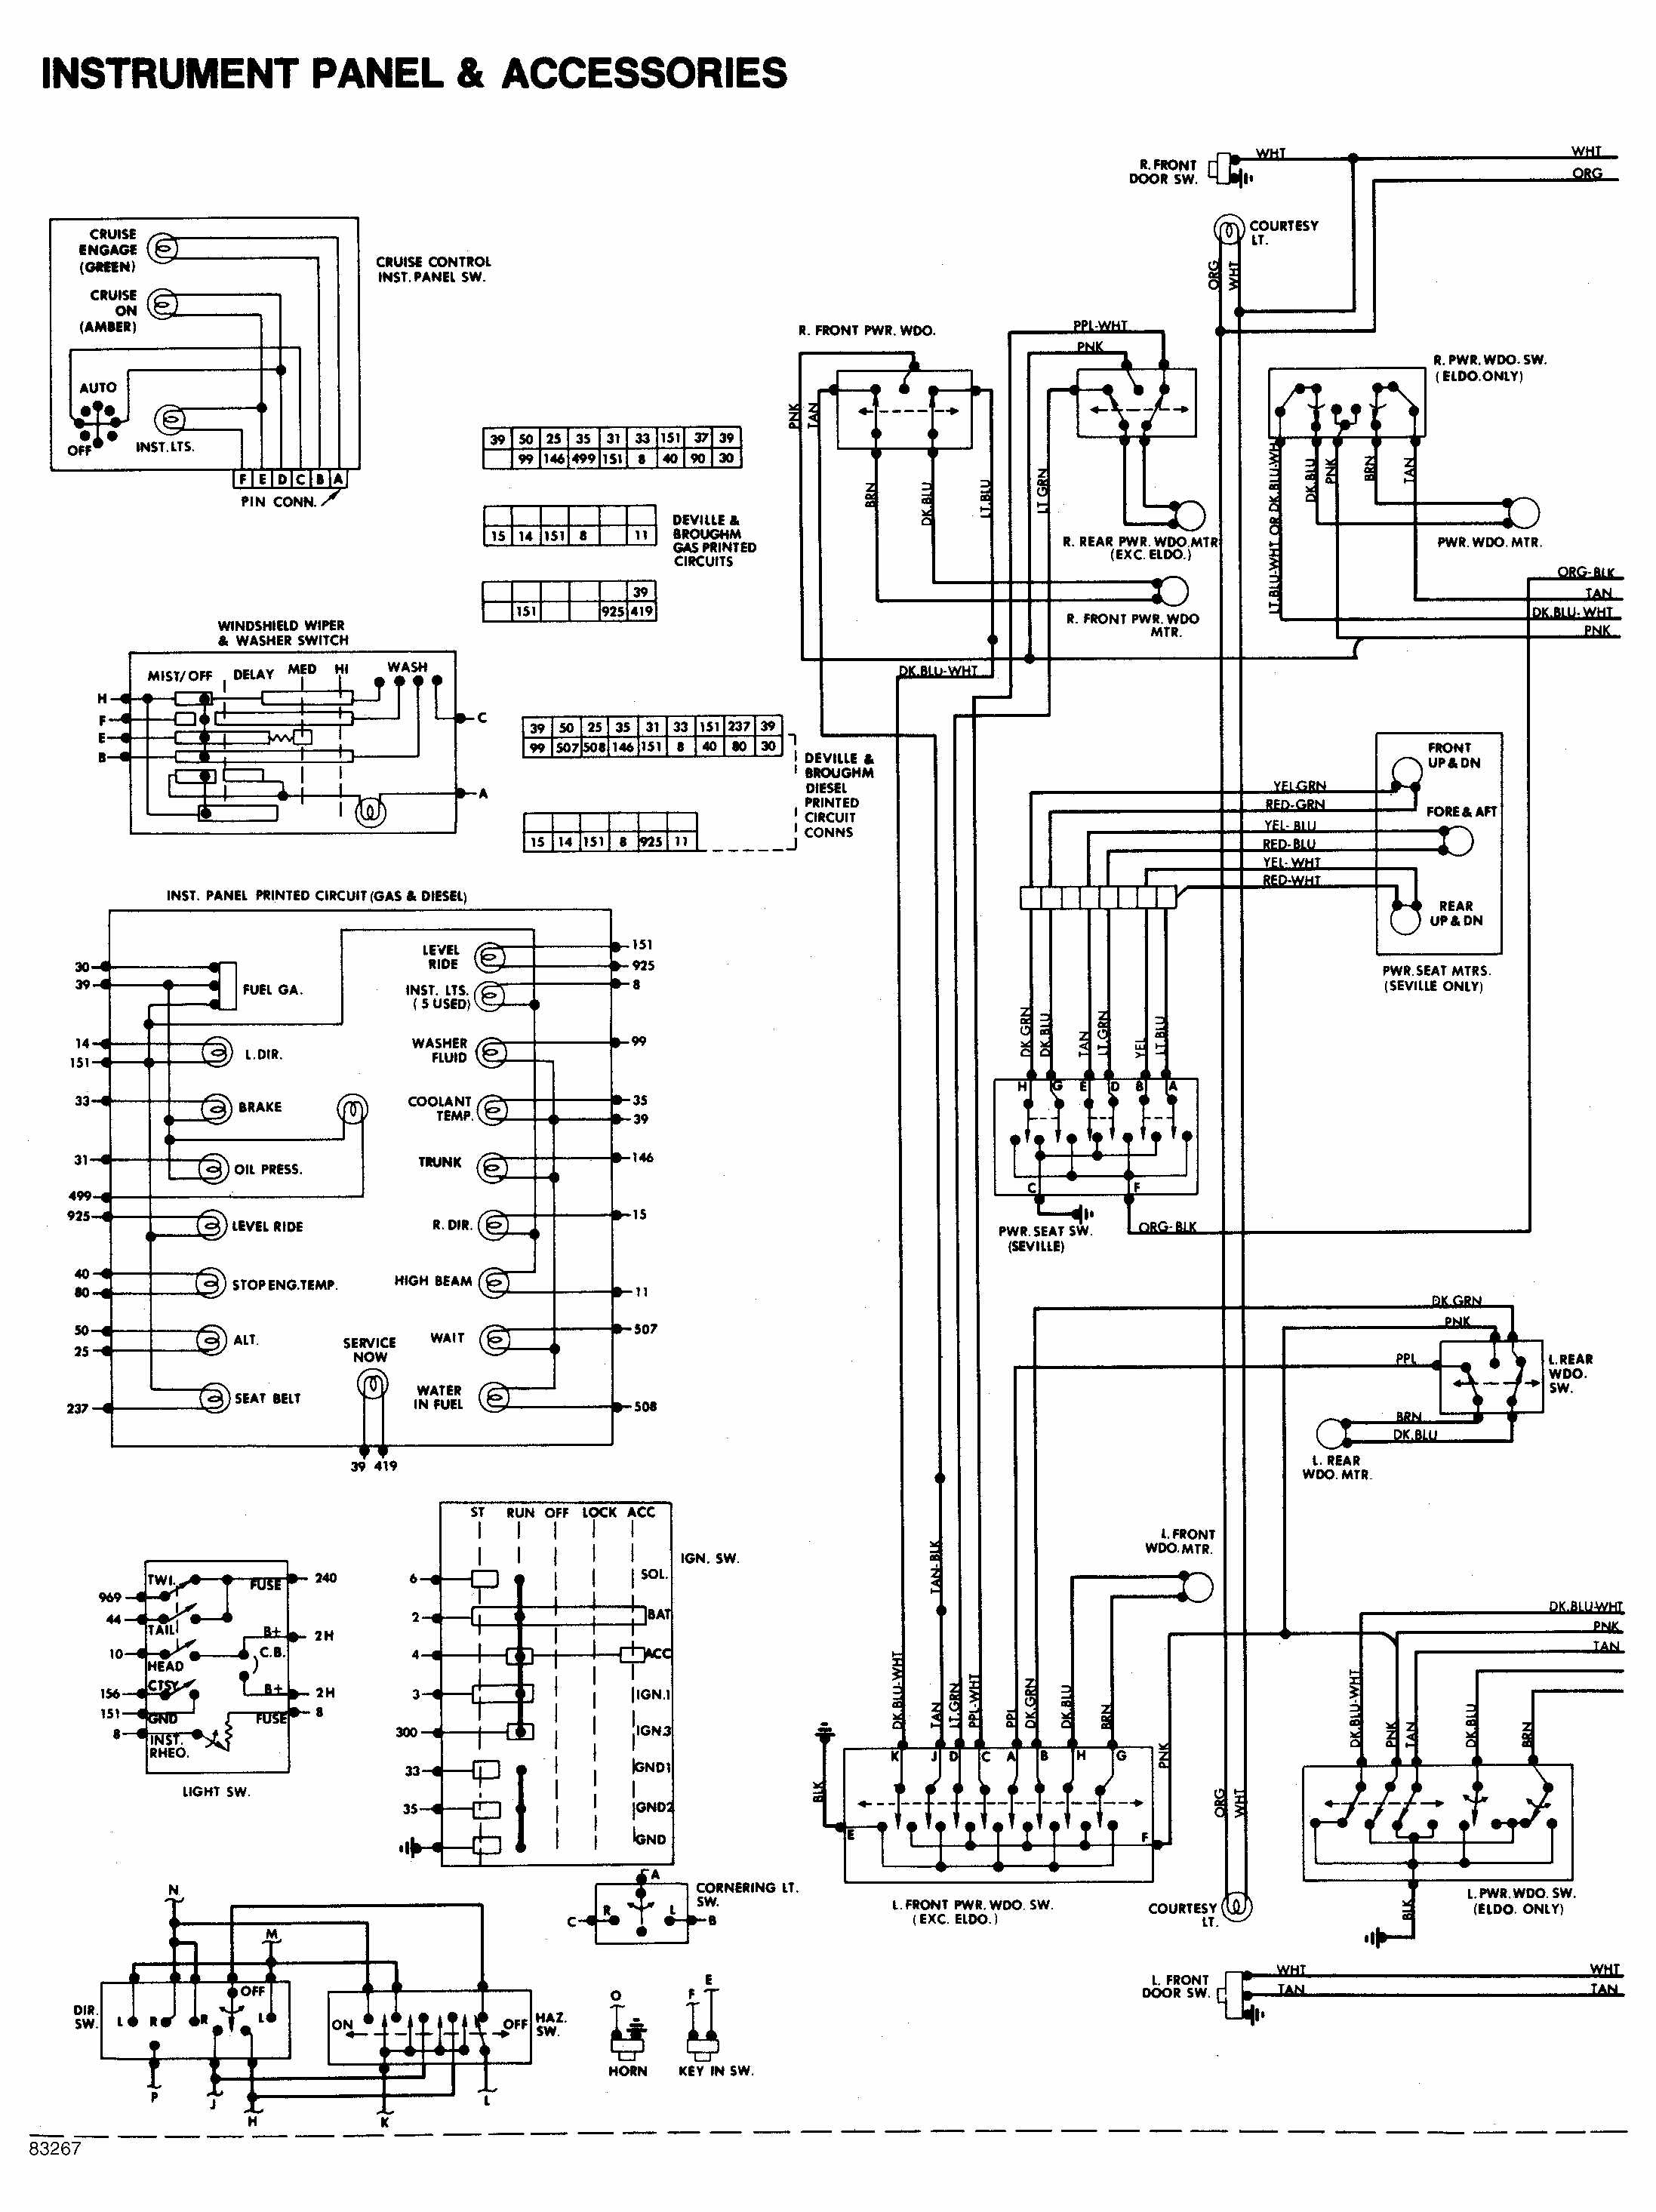 Electrical Wiring Diagram 71 Corvette Reinvent Your Oreck Xl 988 Chevy Diagrams Rh Wizard Com 66 C3